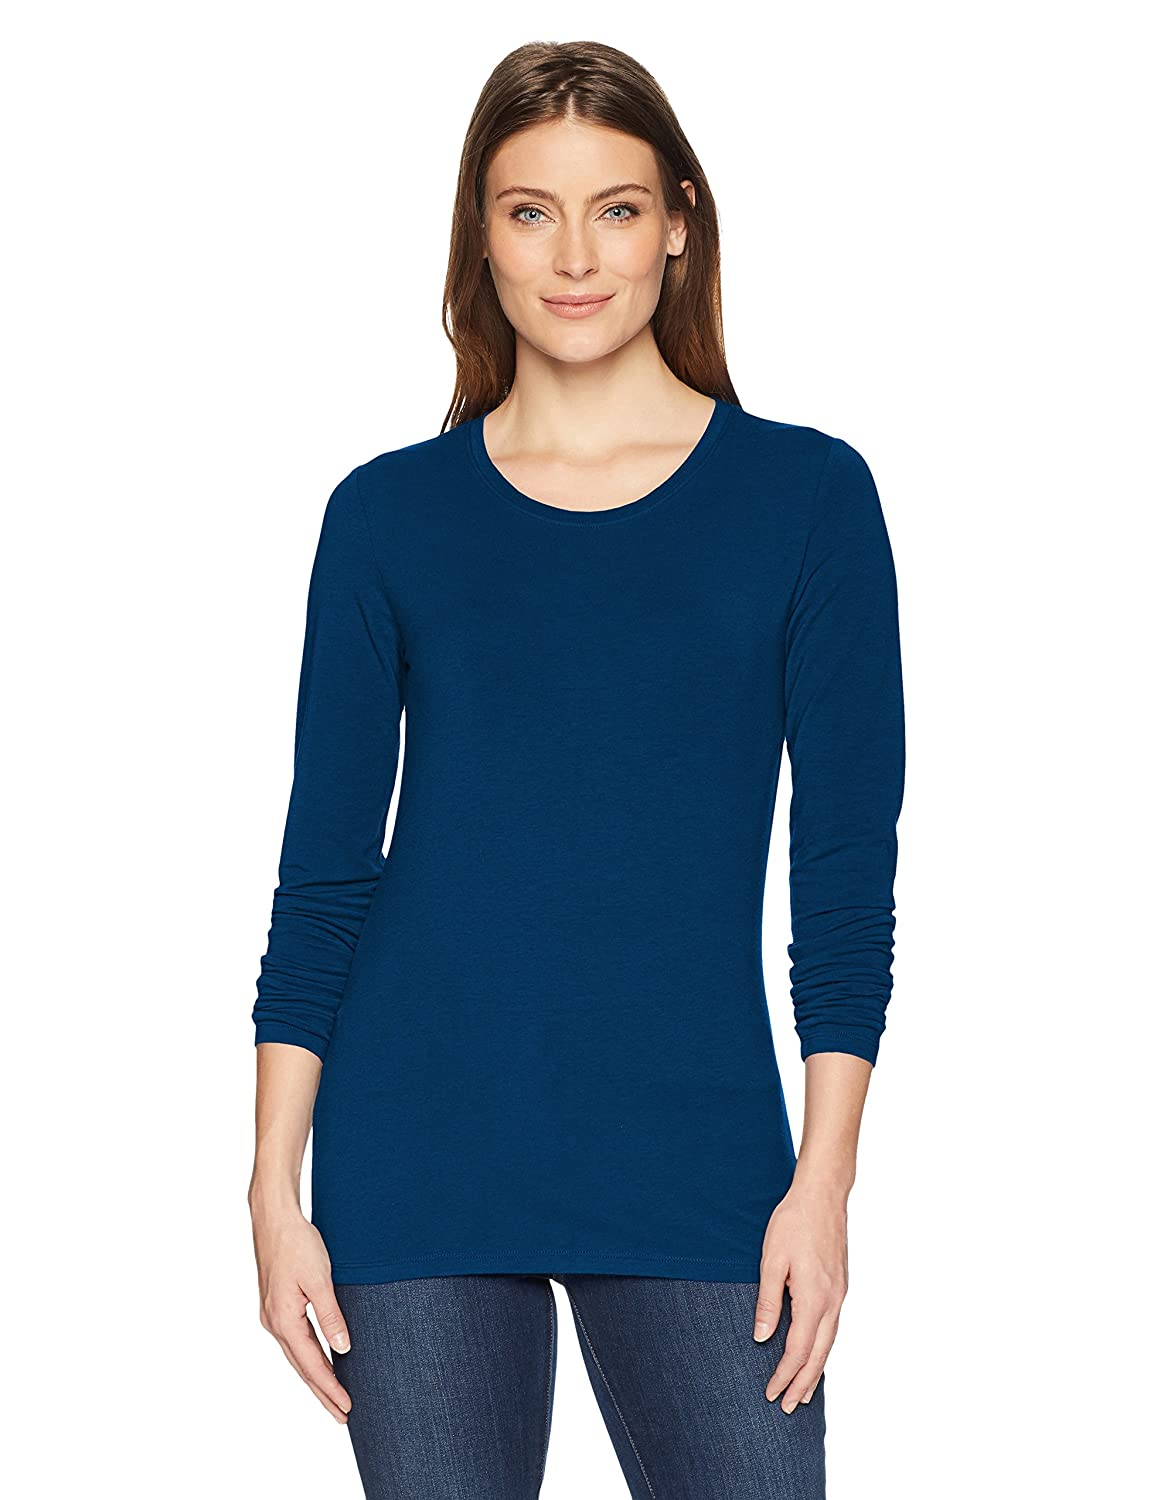 6146fd520849 Amazon.com  Amazon Essentials Women s Long-Sleeve T-Shirt  Clothing